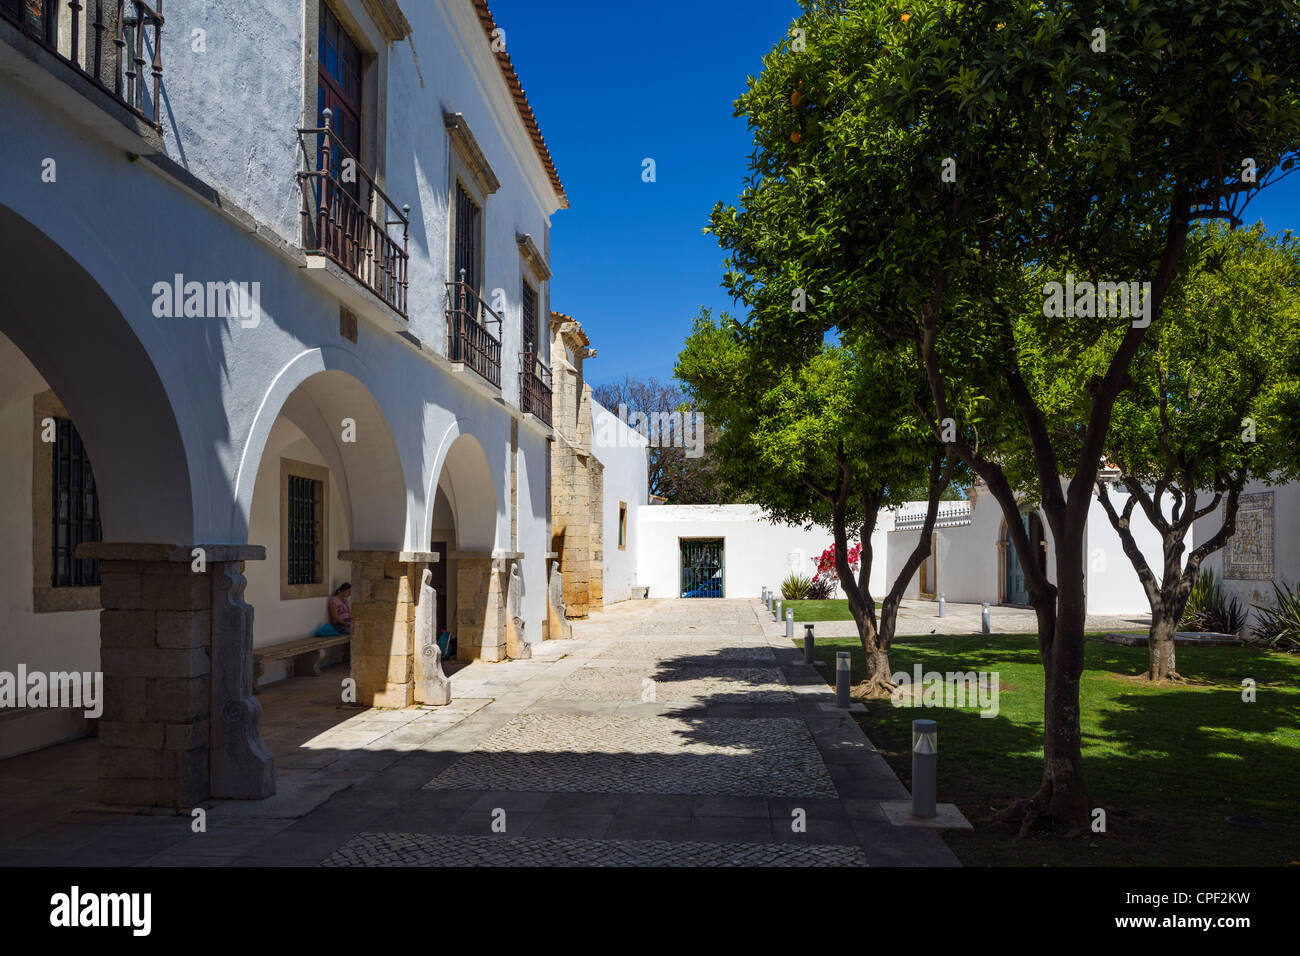 Courtyard in the Se (Cathedral) in the Old Town (Cidade Velha or Vila Adentro), Faro, Algarve, Portugal - Stock Image